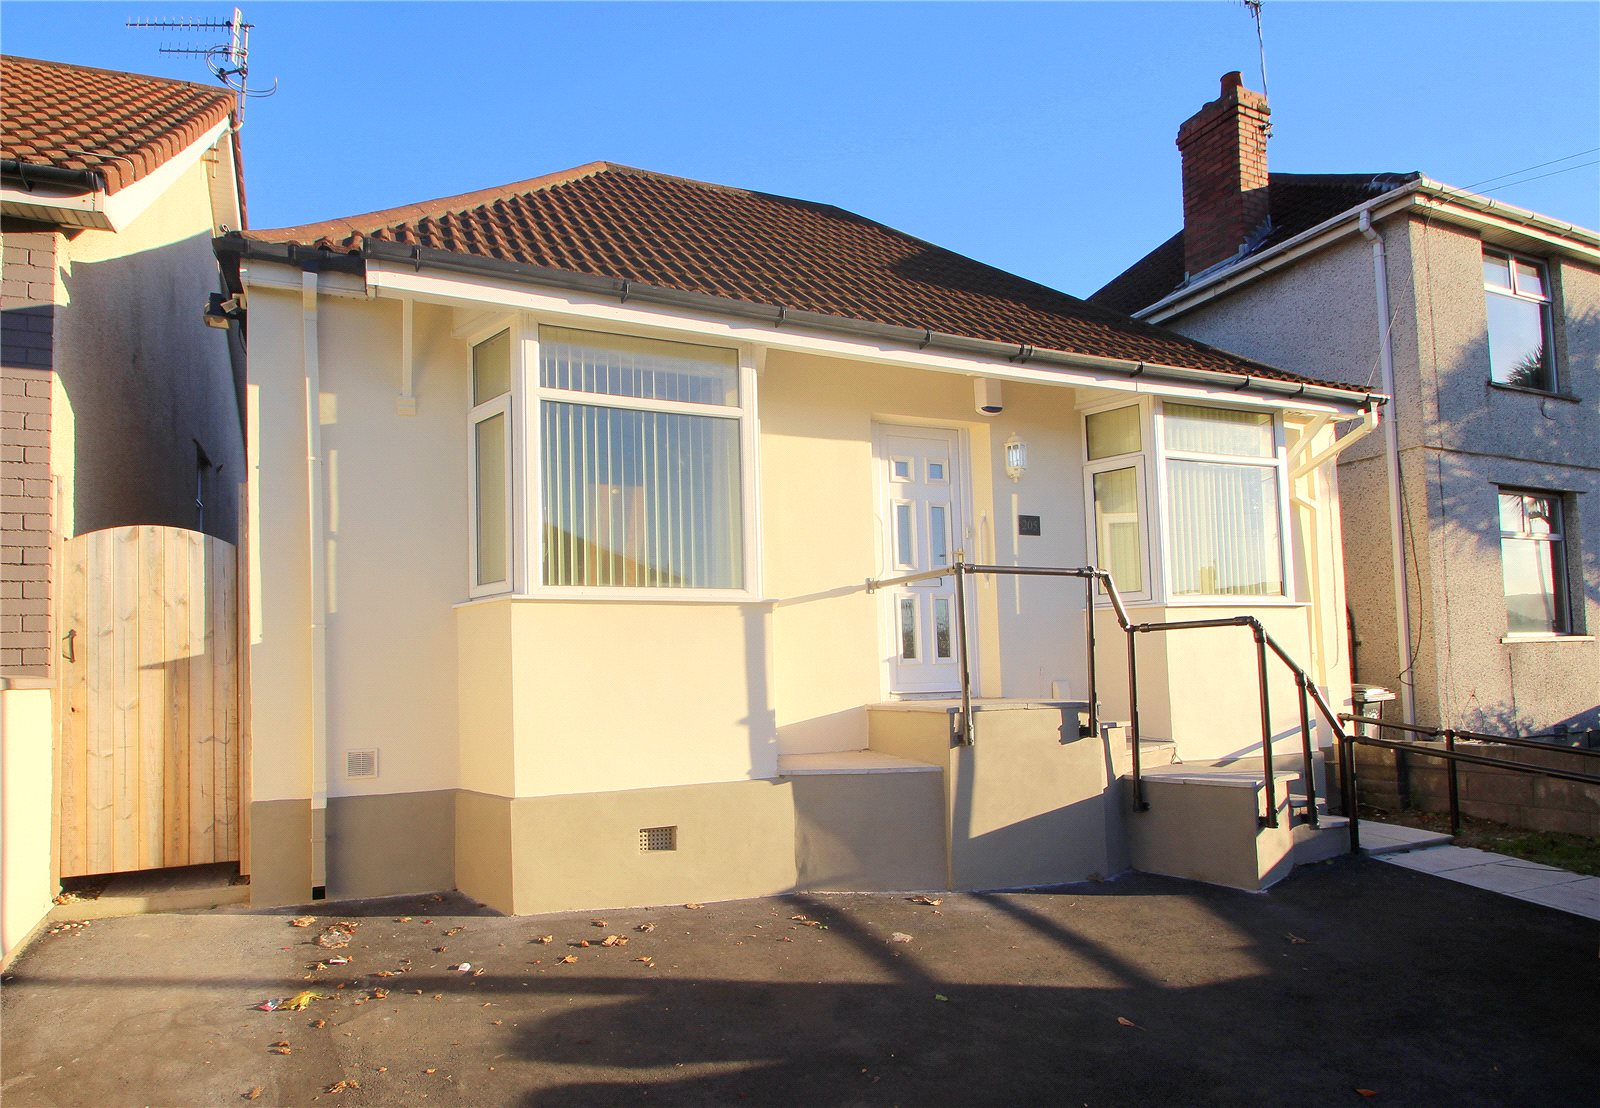 3 Bedrooms Bungalow for sale in Bishopsworth Road Bedminster Down BRISTOL BS13